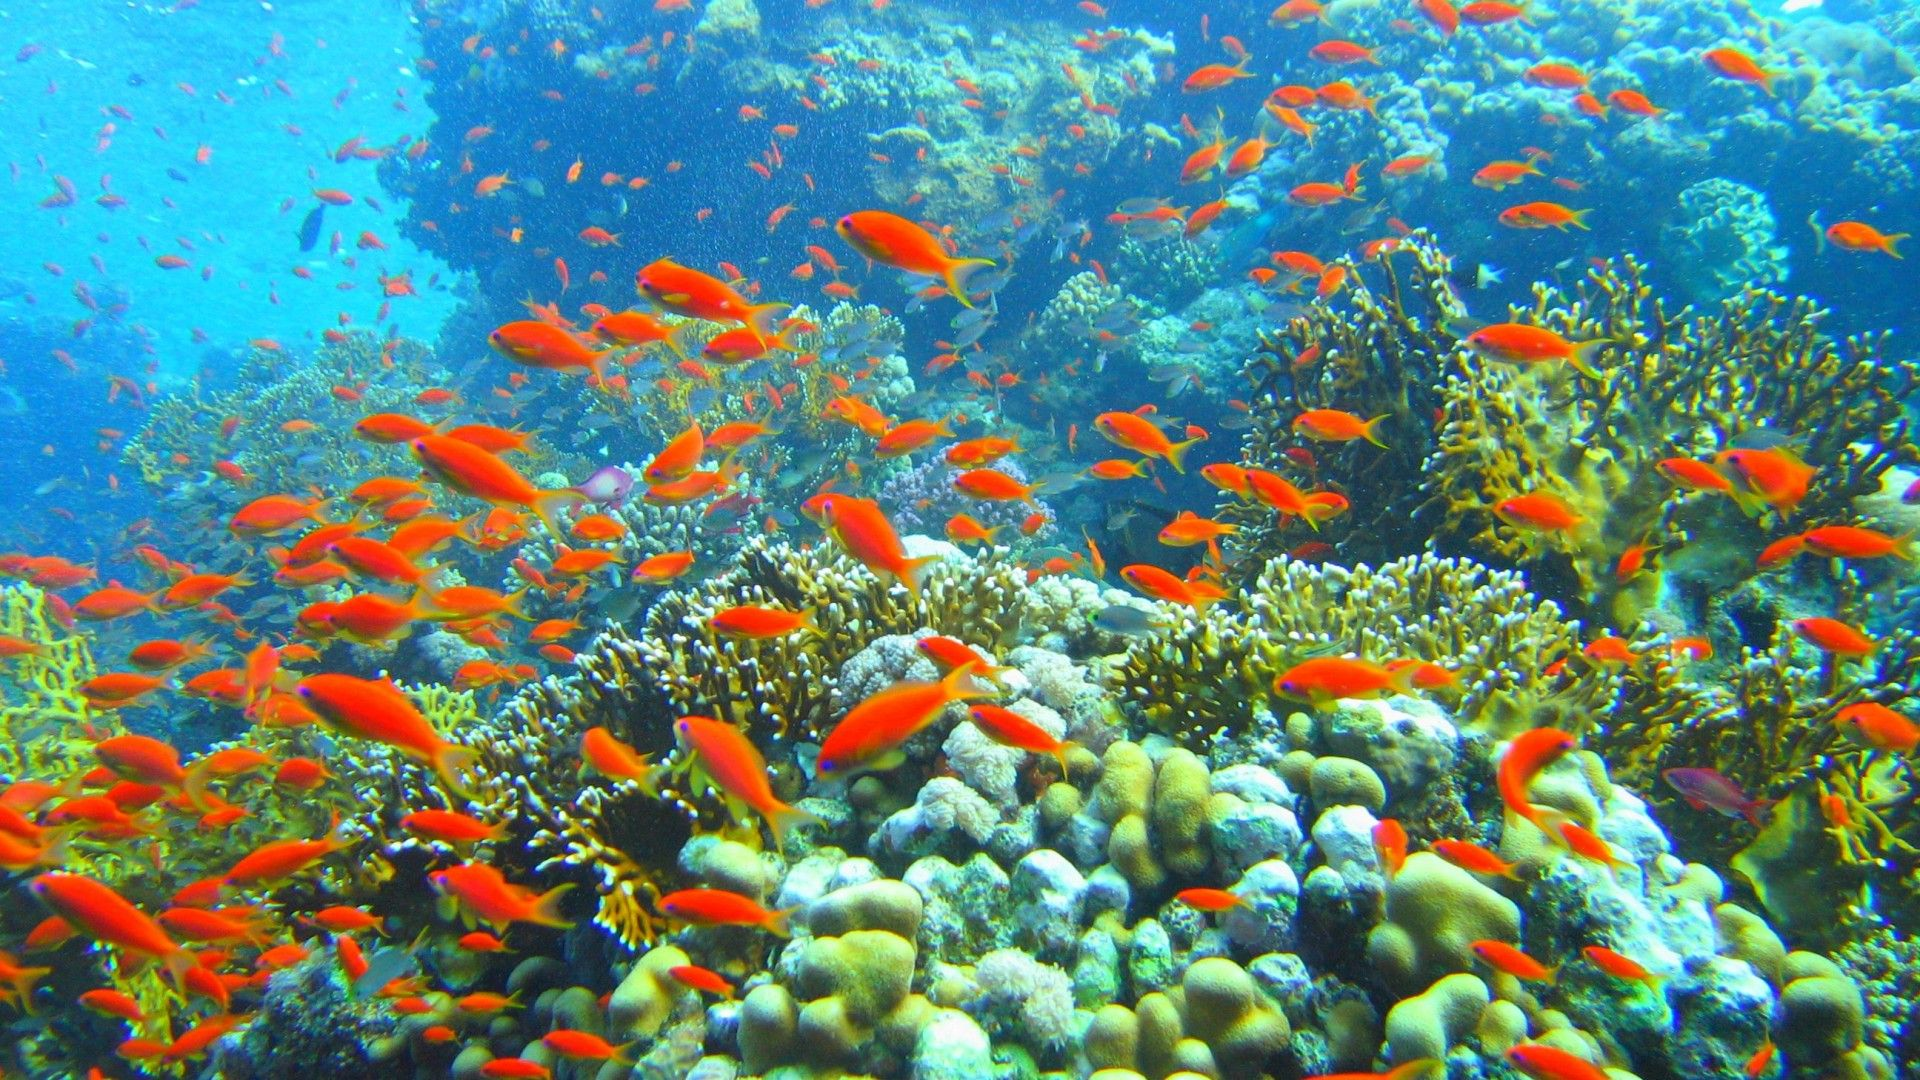 Download Fish 1080p 1920x1080 Hd Wallpaper Places To Visit Red